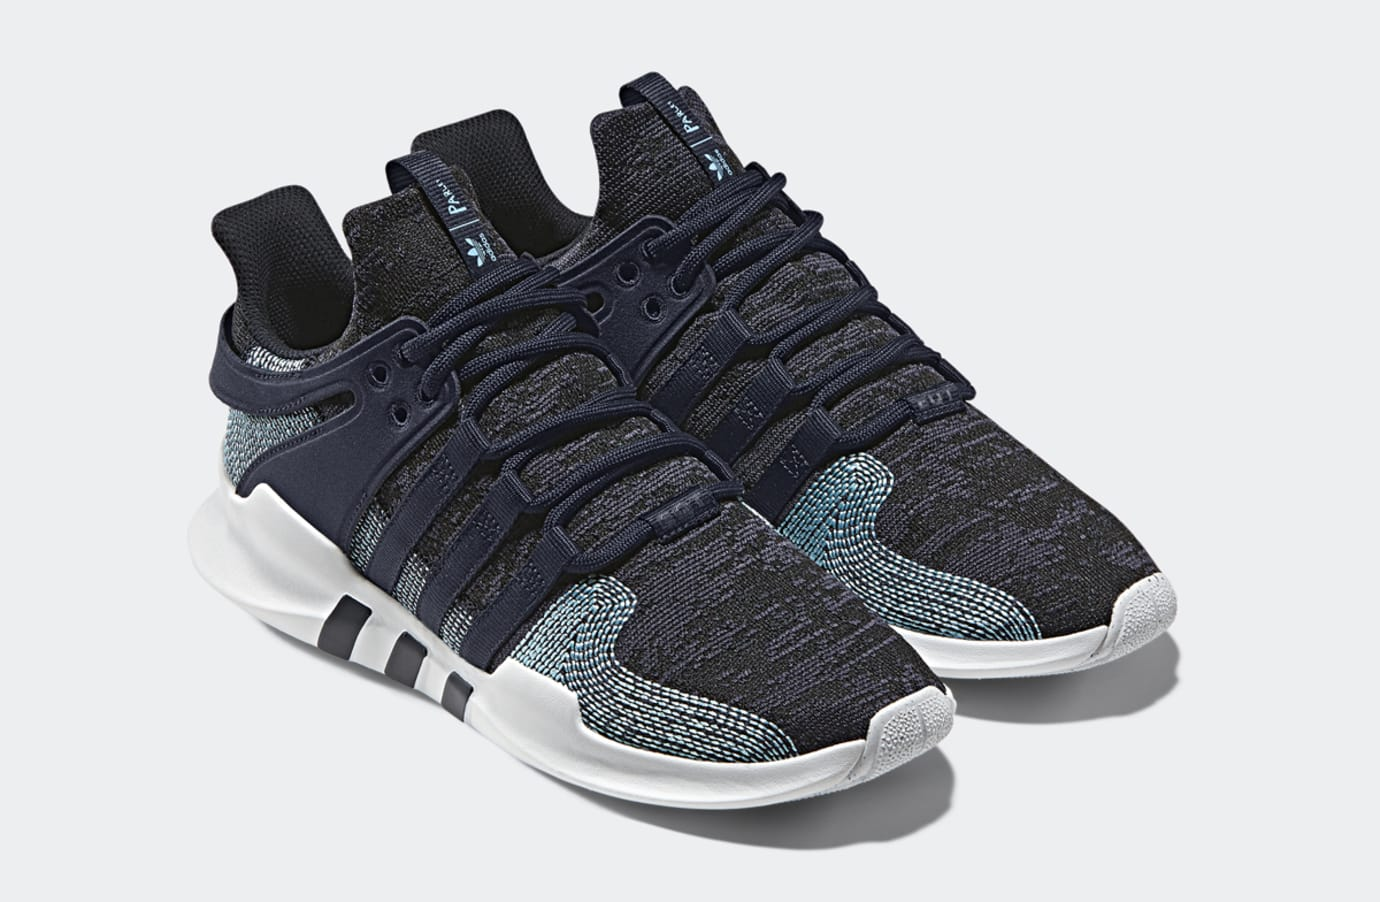 Parley Adidas EQT Support ADV 1